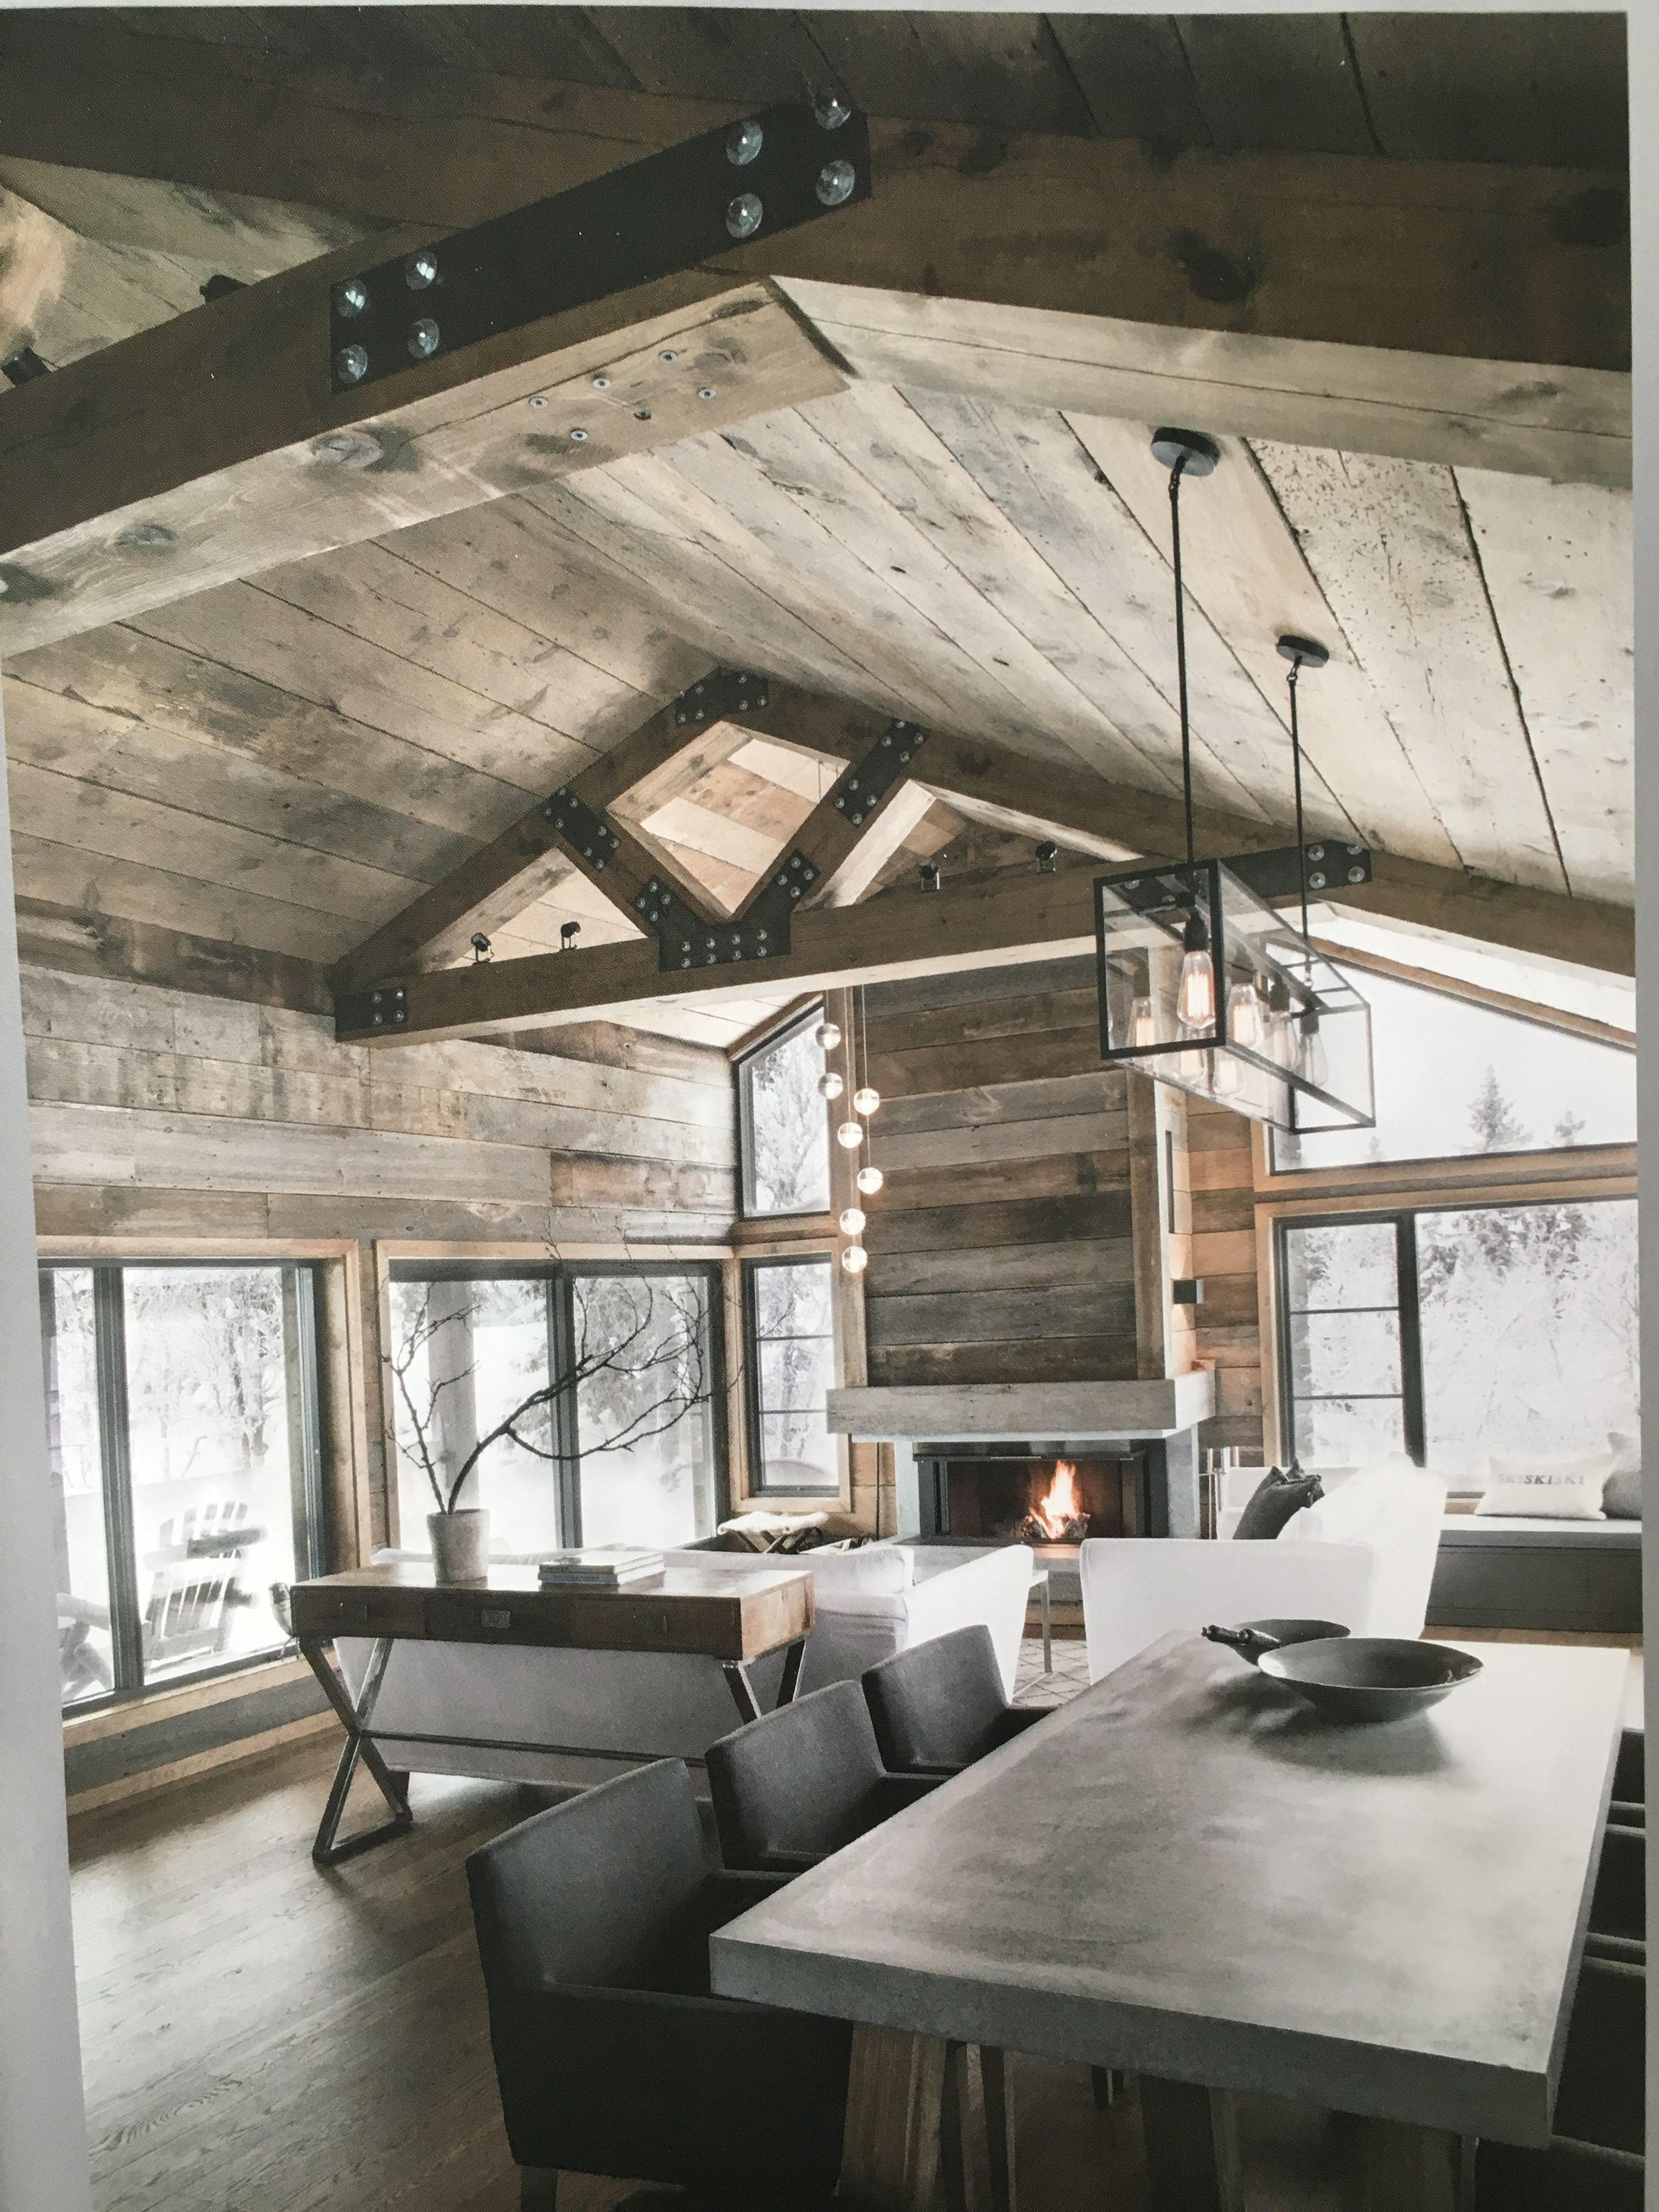 Attractive Modern Rustic Design, Wood Accents, Concrete Furnishings, Warm Color Palette